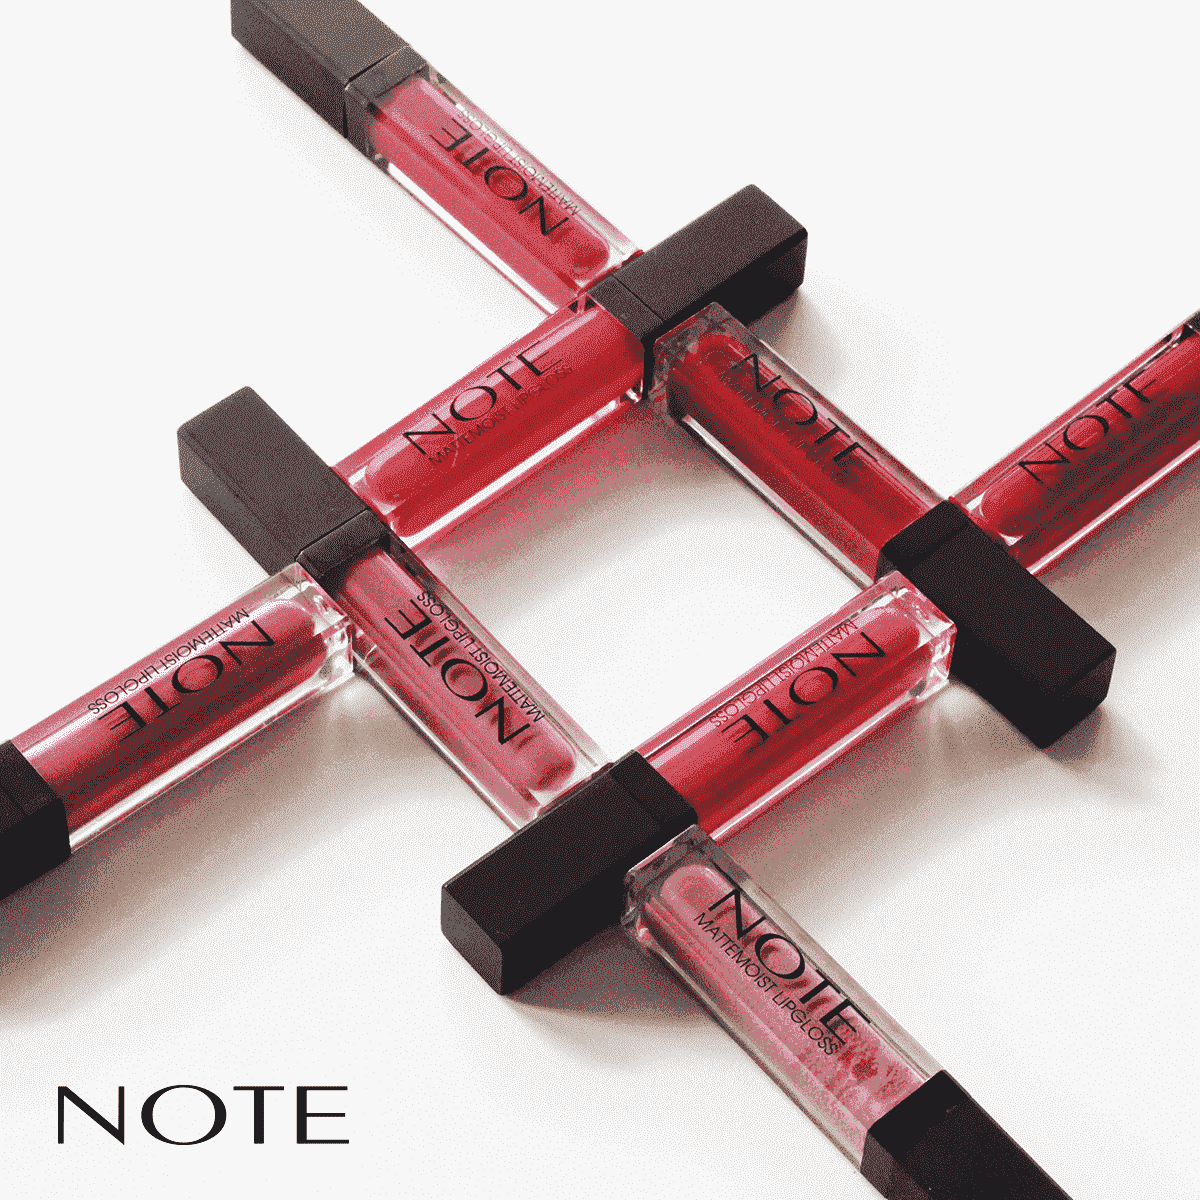 Lip Glosses-Note Beauty